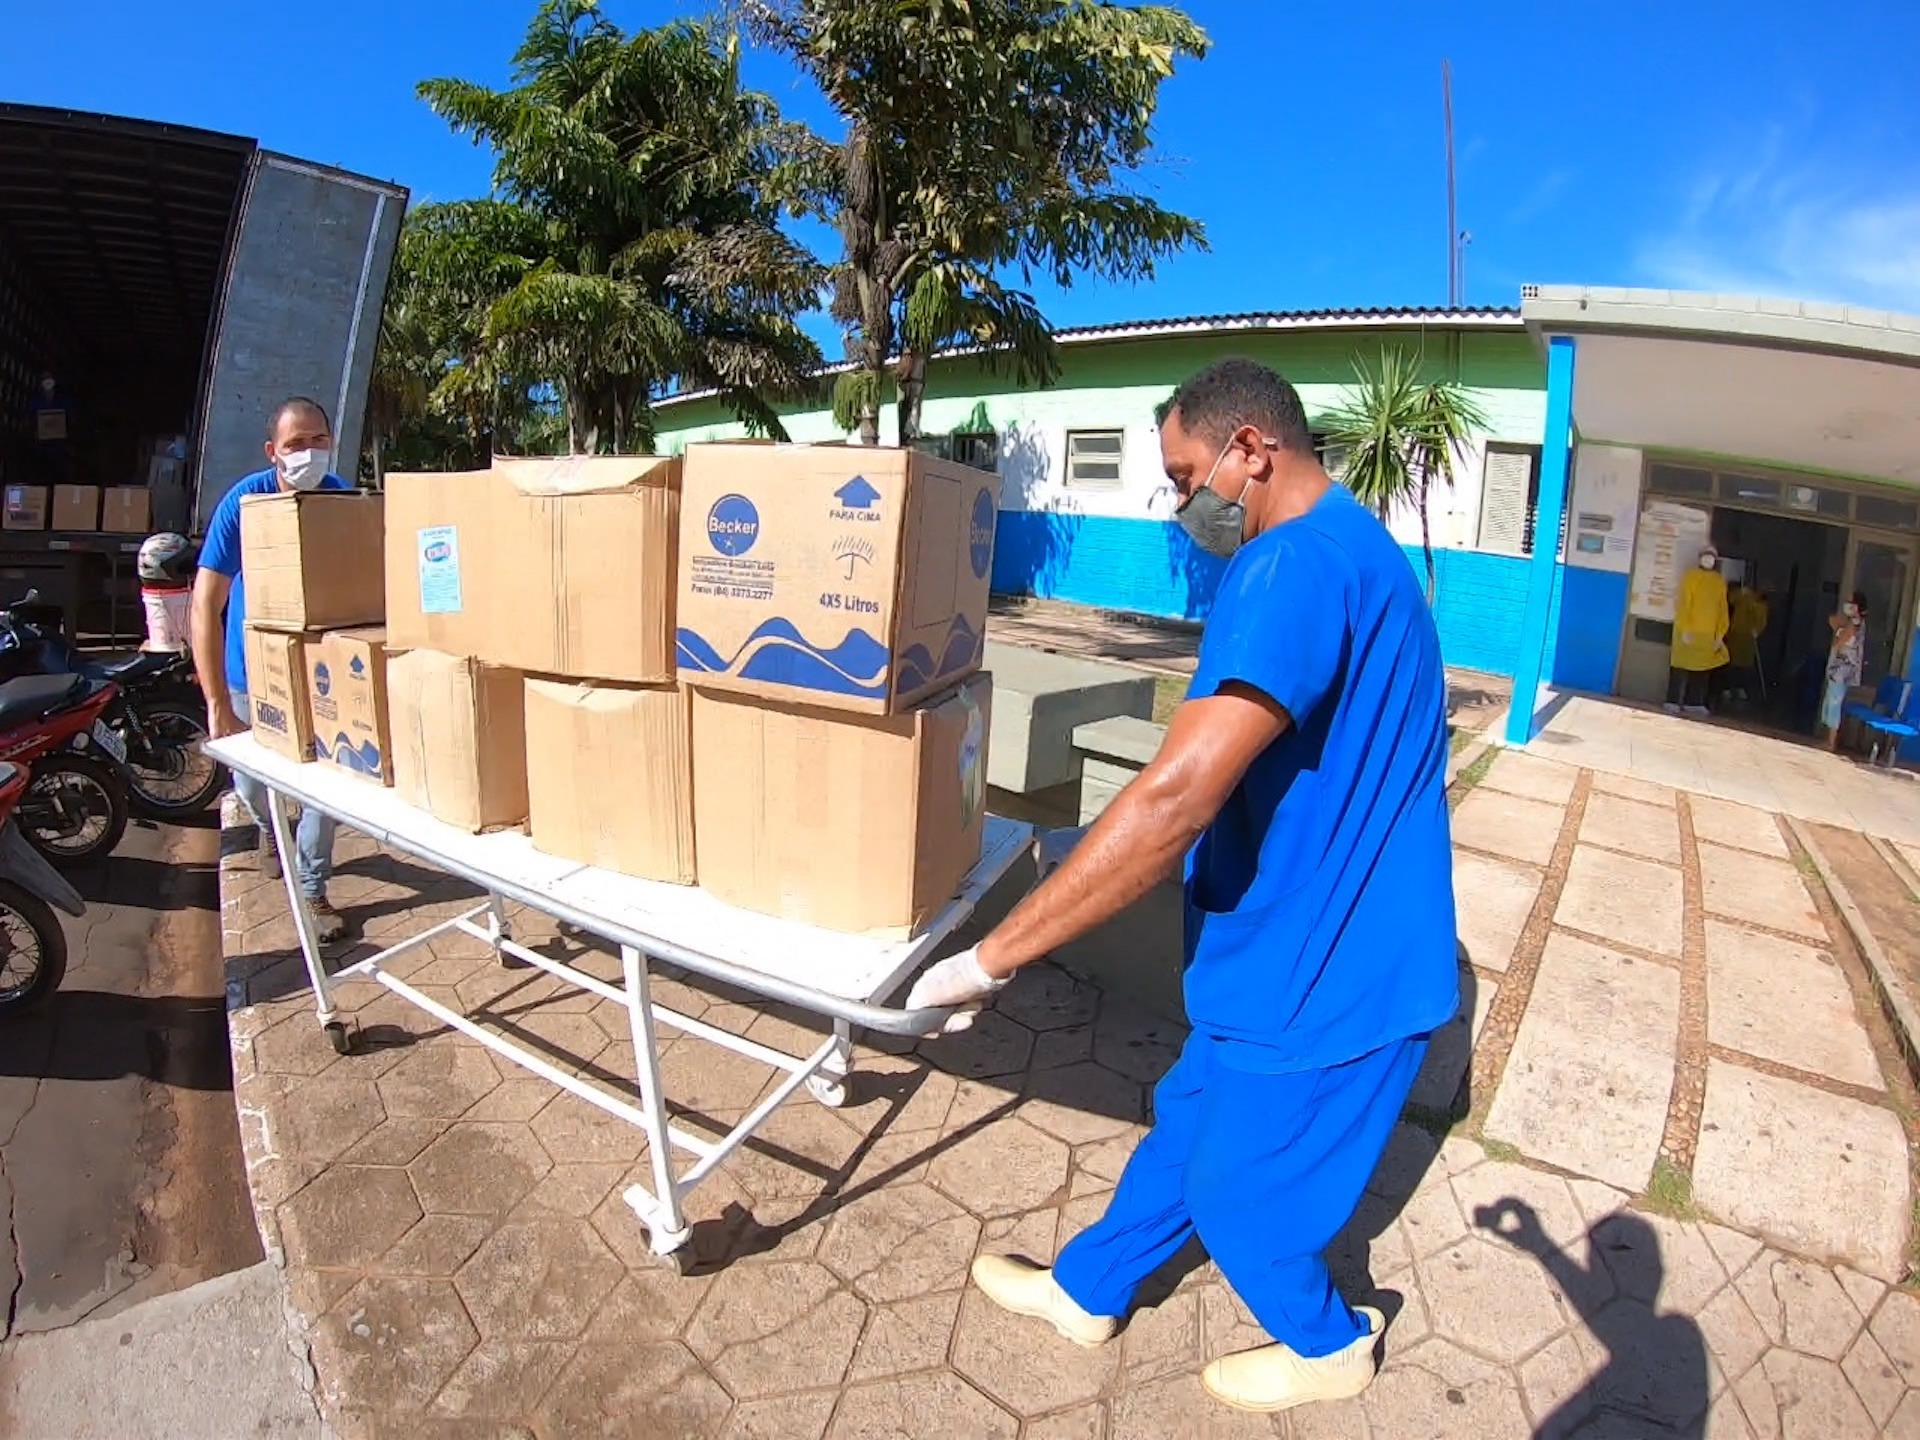 Hospital staff wearing blue scrubs unload several boxes of supplies into the hospital.